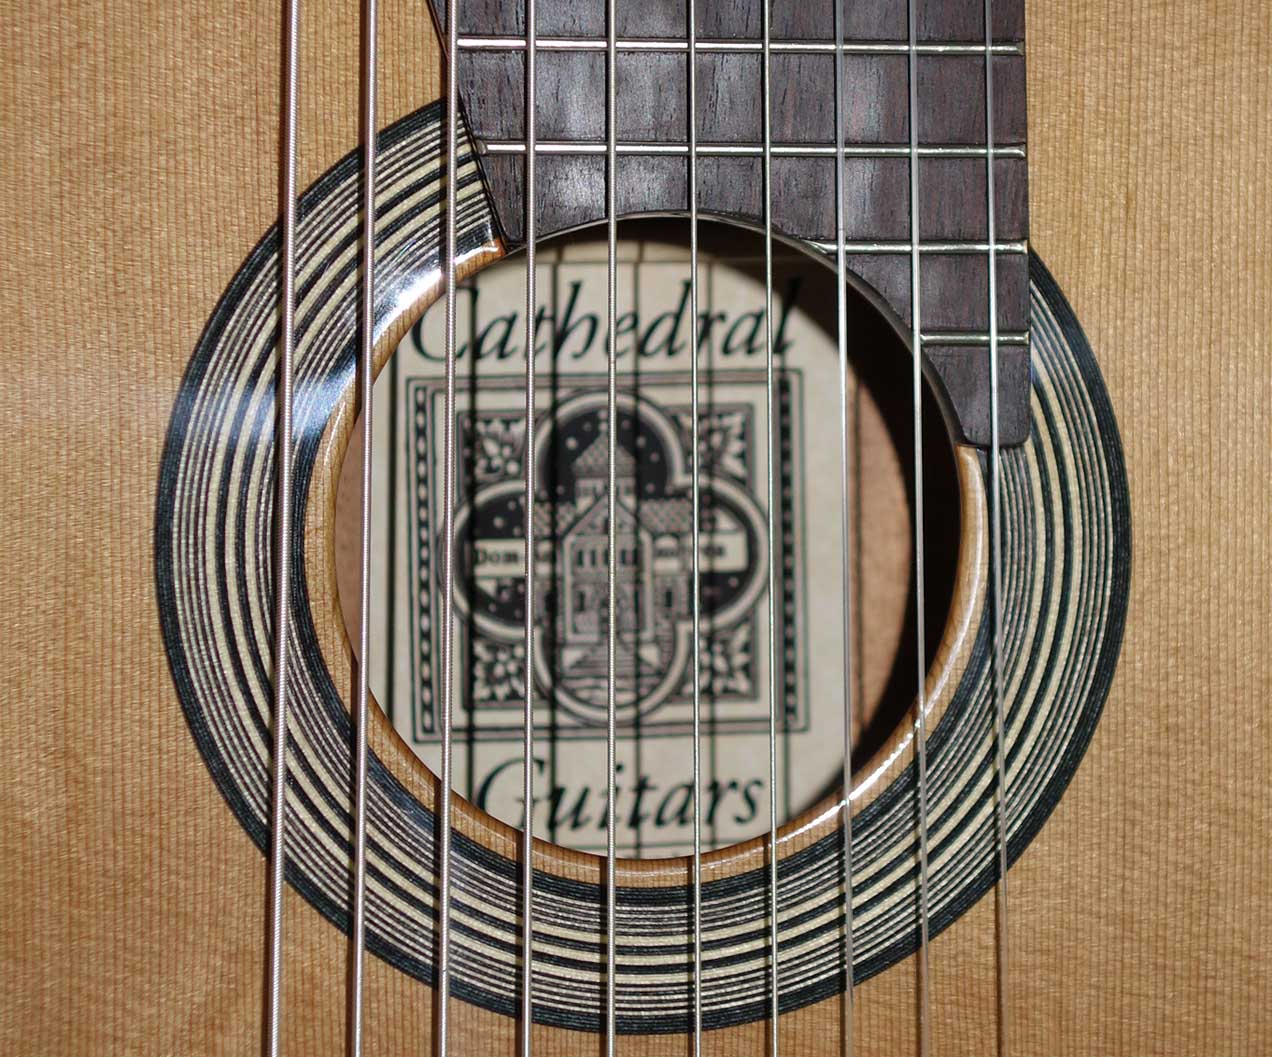 NEW 2017 Cathedral Guitars 15 10-String Classical Harp Guitar All-Solid Tonewoods, w/Hardshell Case